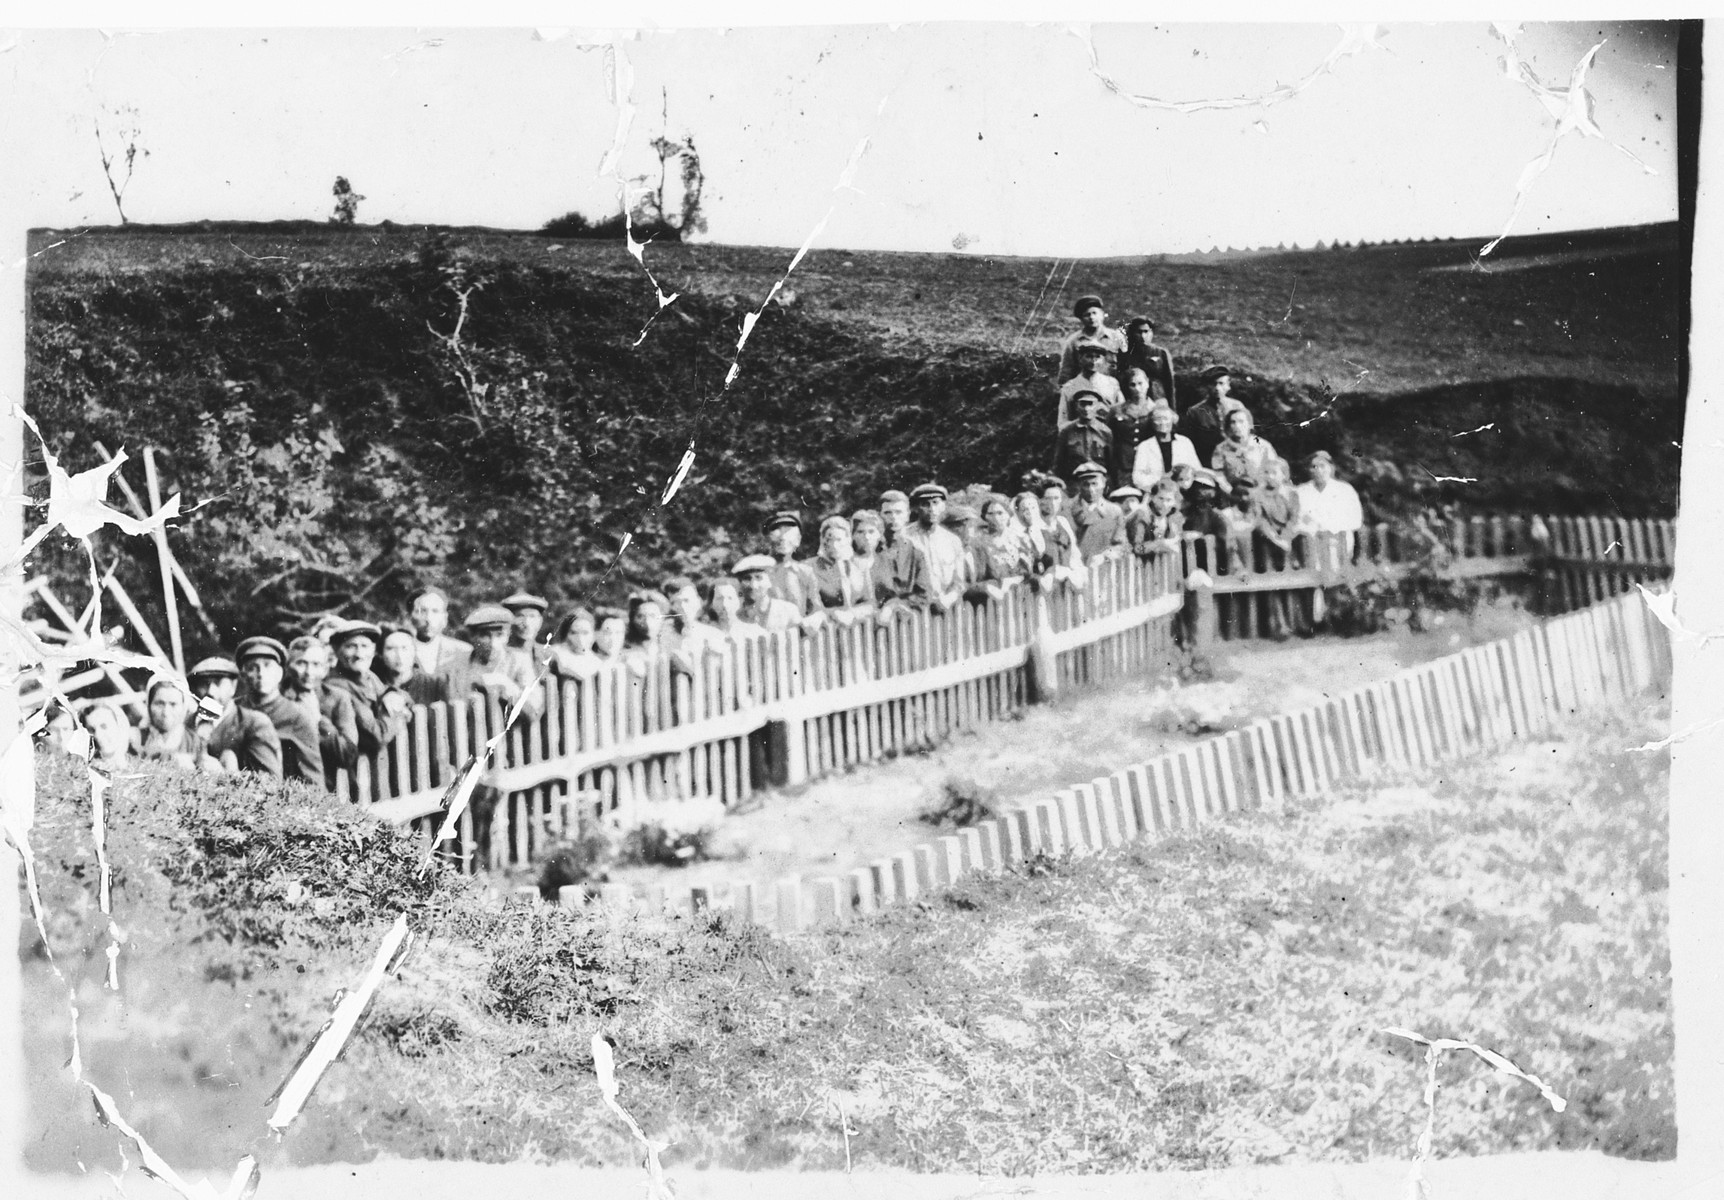 Members of the Bielski partisan group stands by the site of a mass grave shortly after liberation.